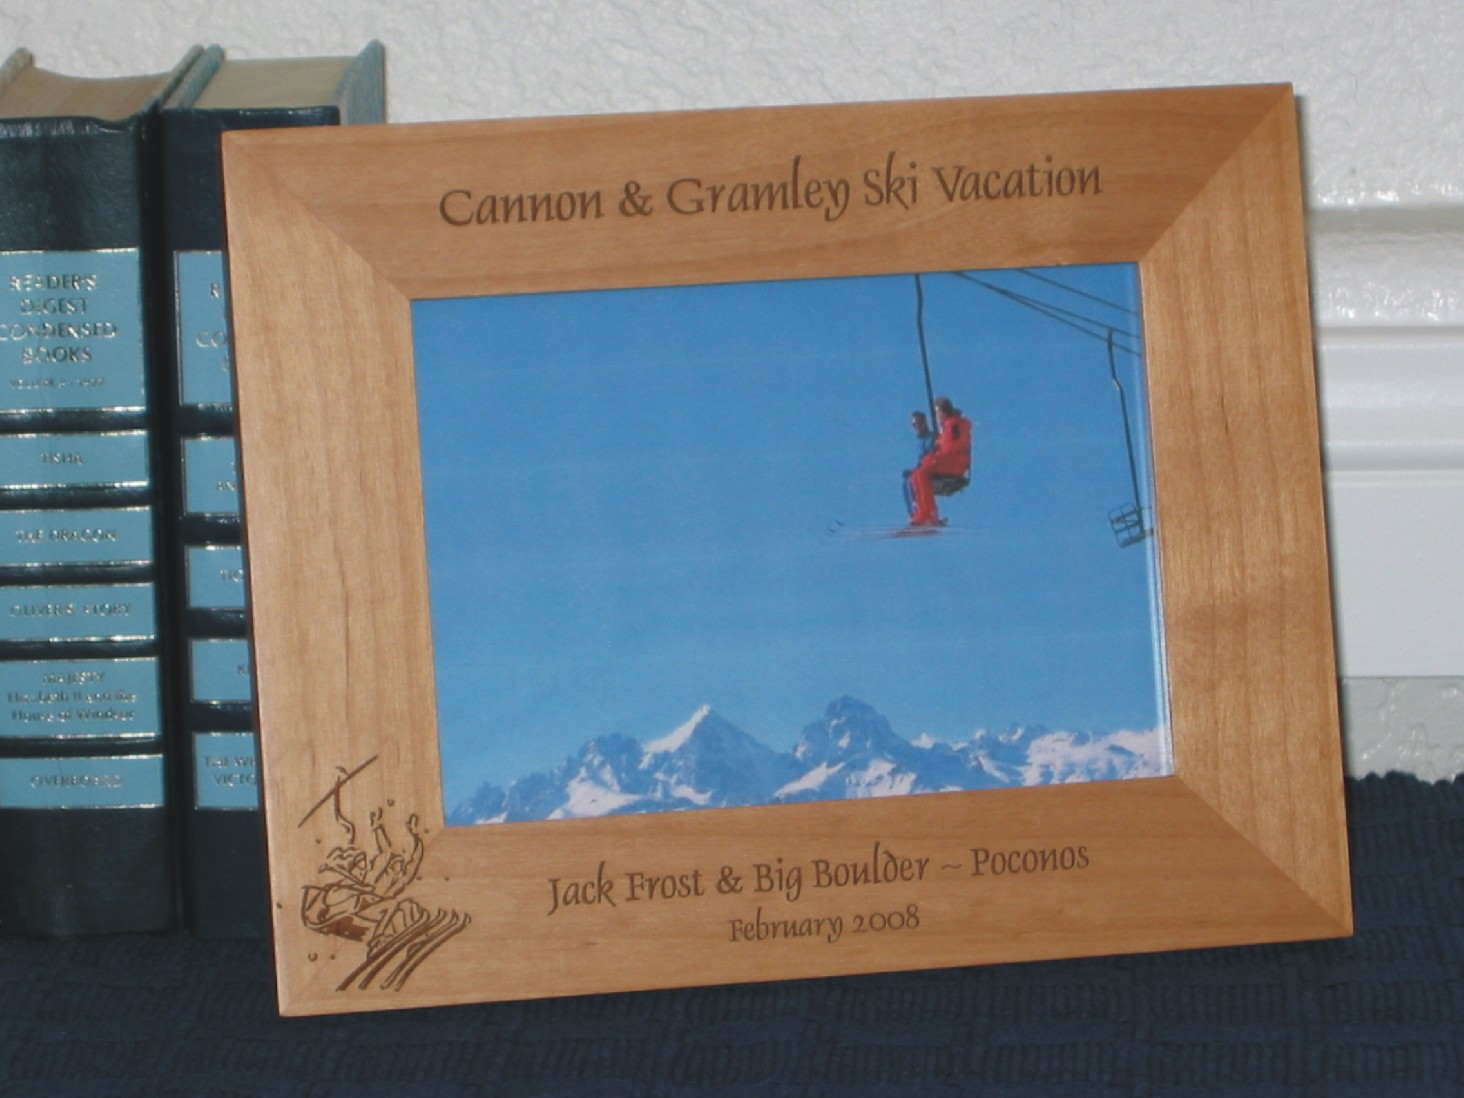 Colorado picture frames souvenirs personalized ski lift picture frame personalized vail frame laser engraved ski lift jeuxipadfo Choice Image